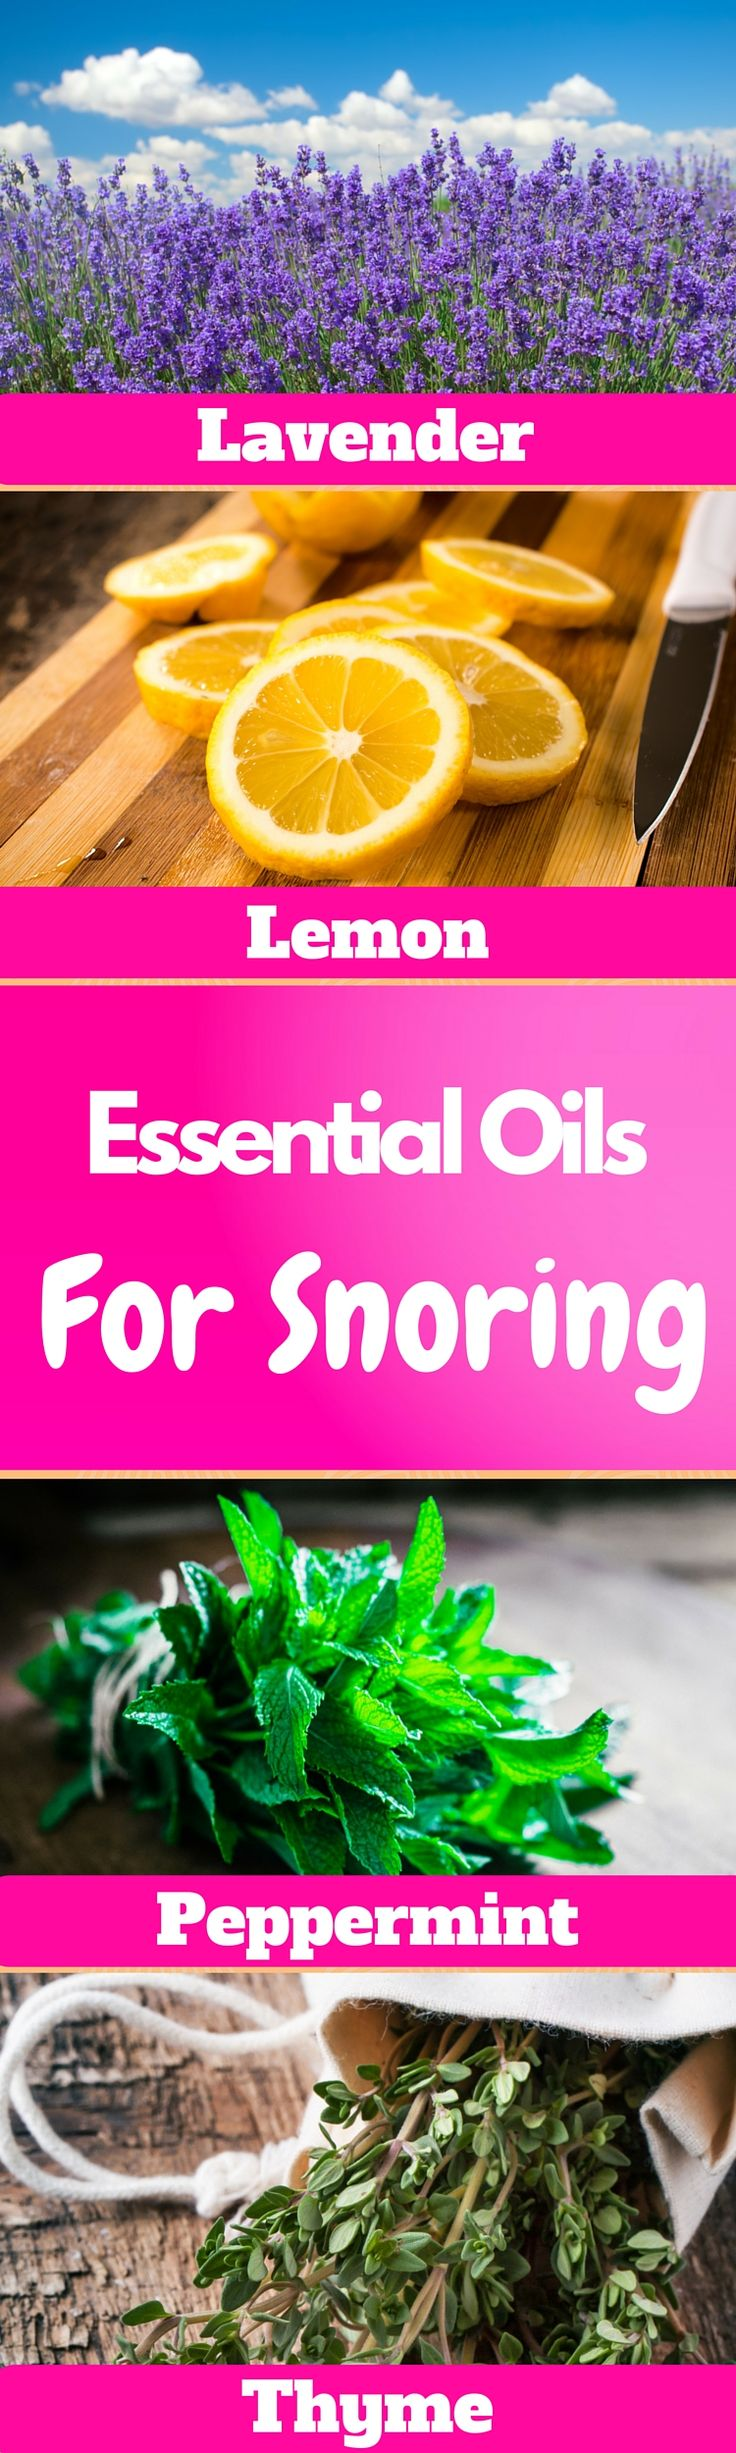 Essential Oils For Snoring - Essential Oils And Snoring